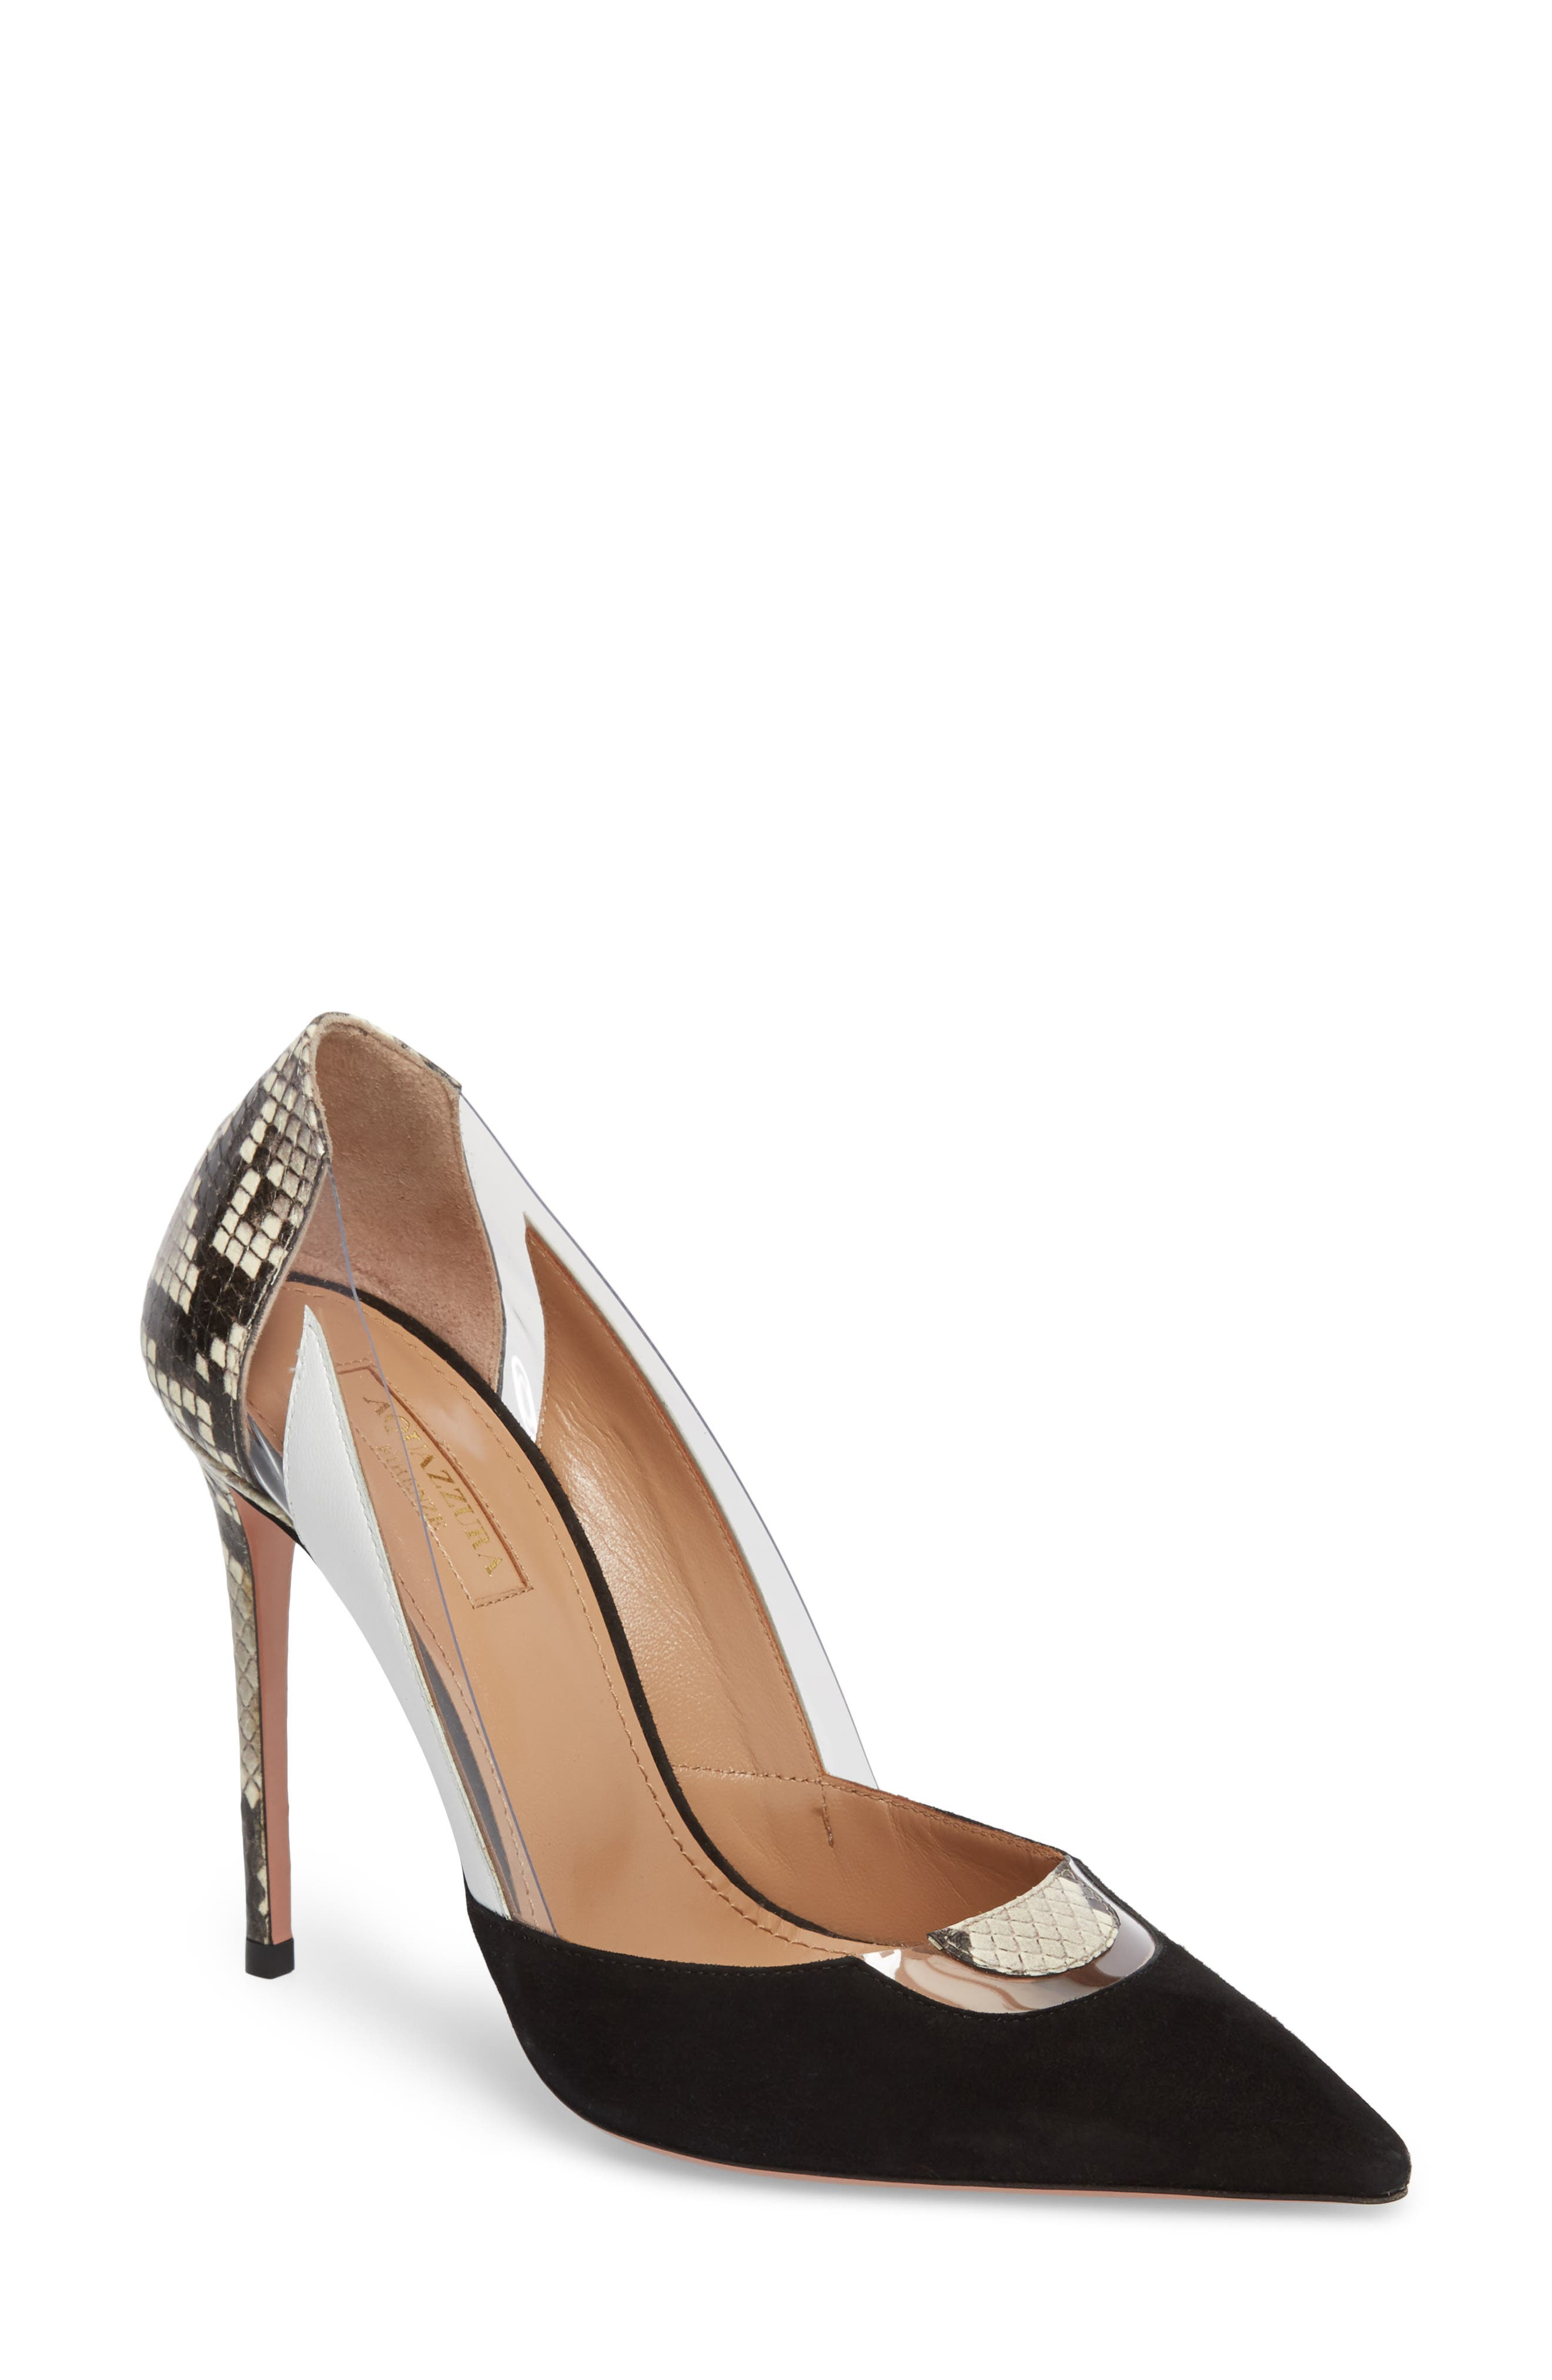 Fearless Genuine Snakeskin Pointy Toe Pump,                             Main thumbnail 1, color,                             BLACK/ SNAKEPRINT